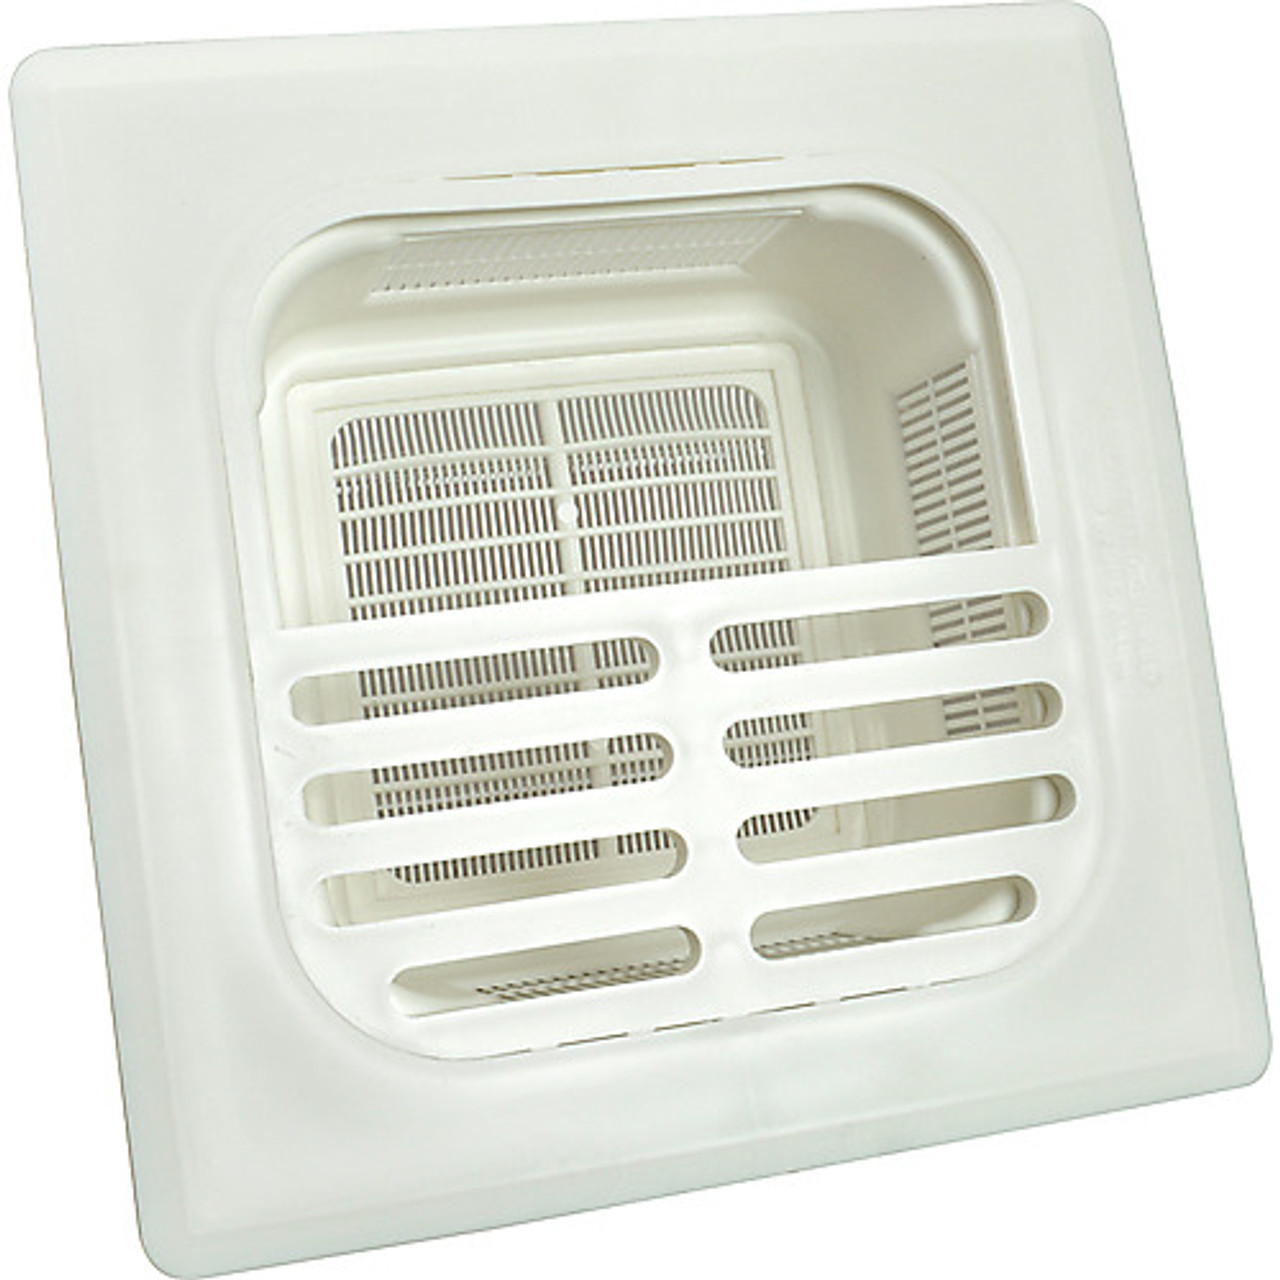 Floor Sink Basket stops all the debris from going down your drain